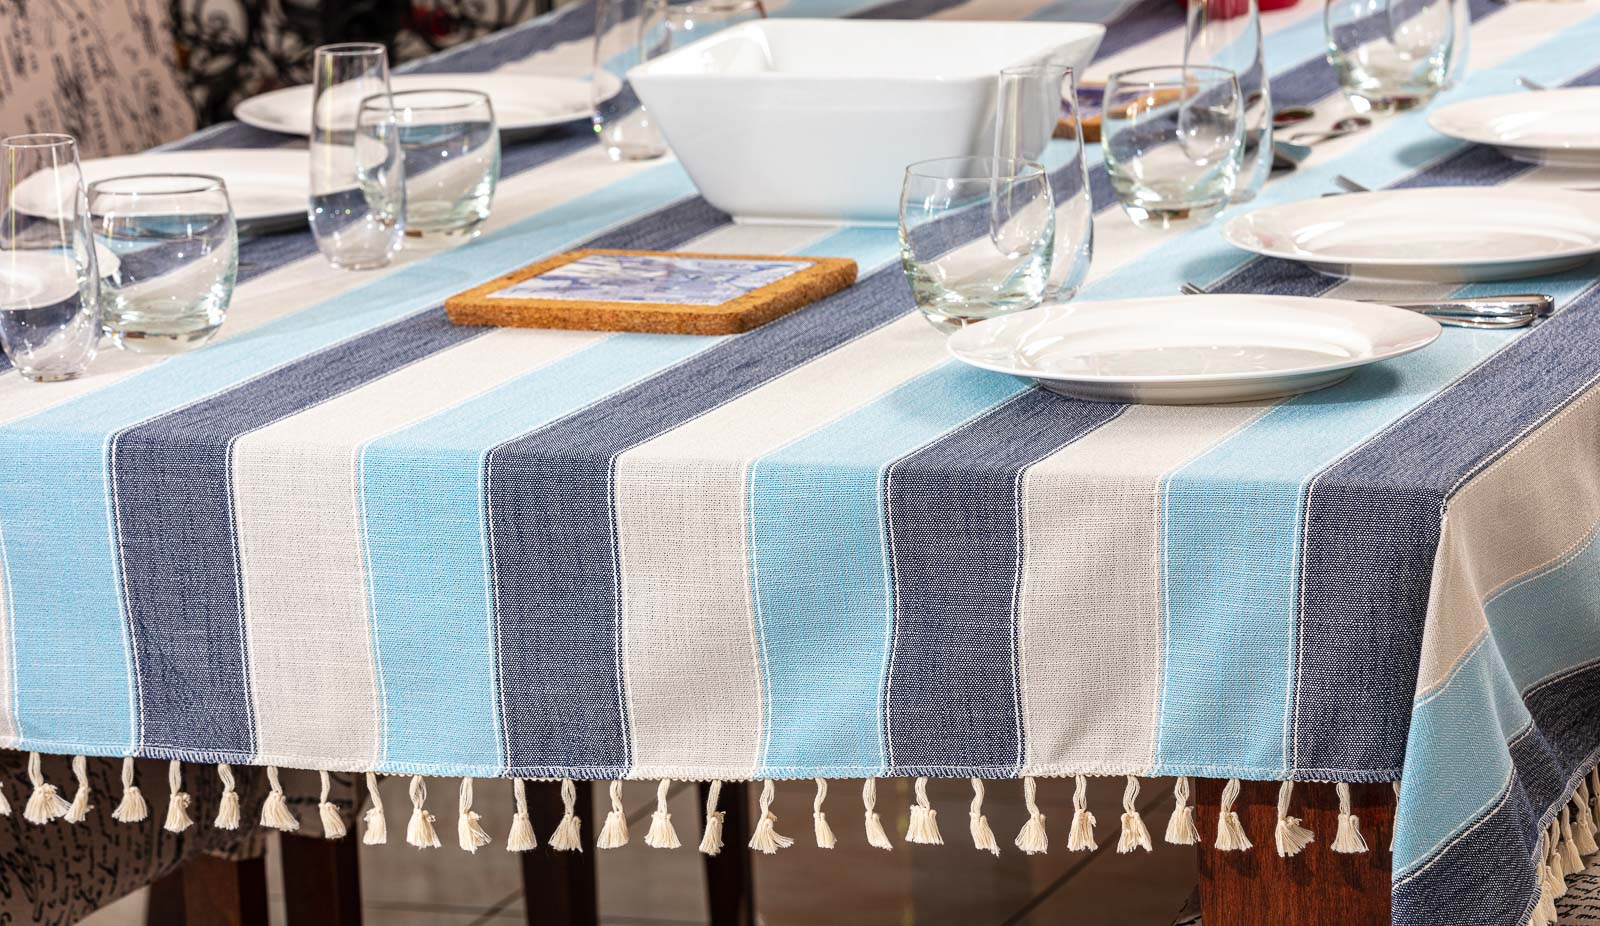 Table Cloth on table lifestyle lunch set- Product photography